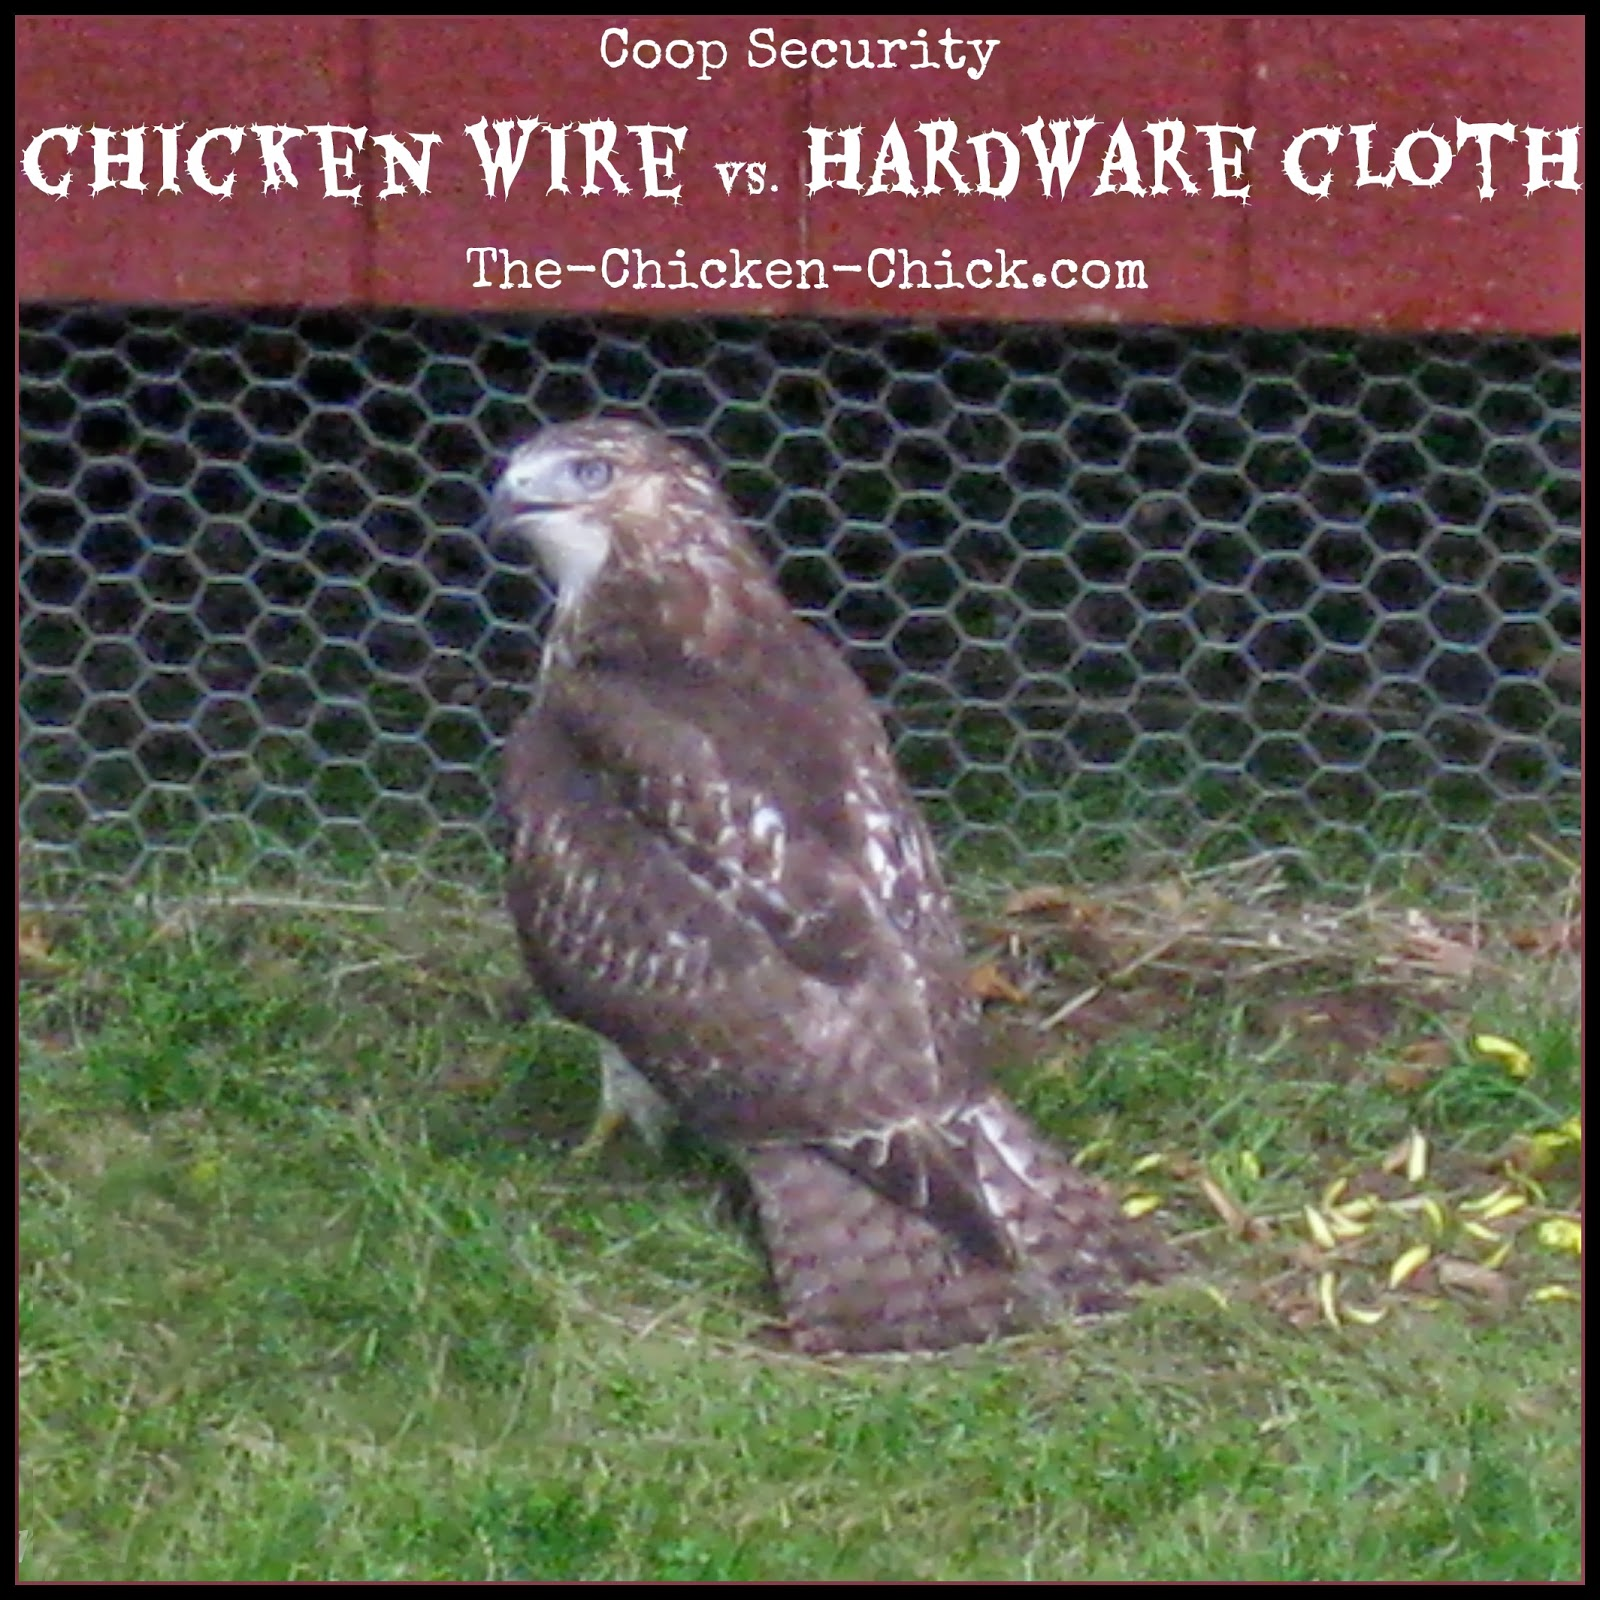 Coop security, the differences between hardware cloth and chicken wire